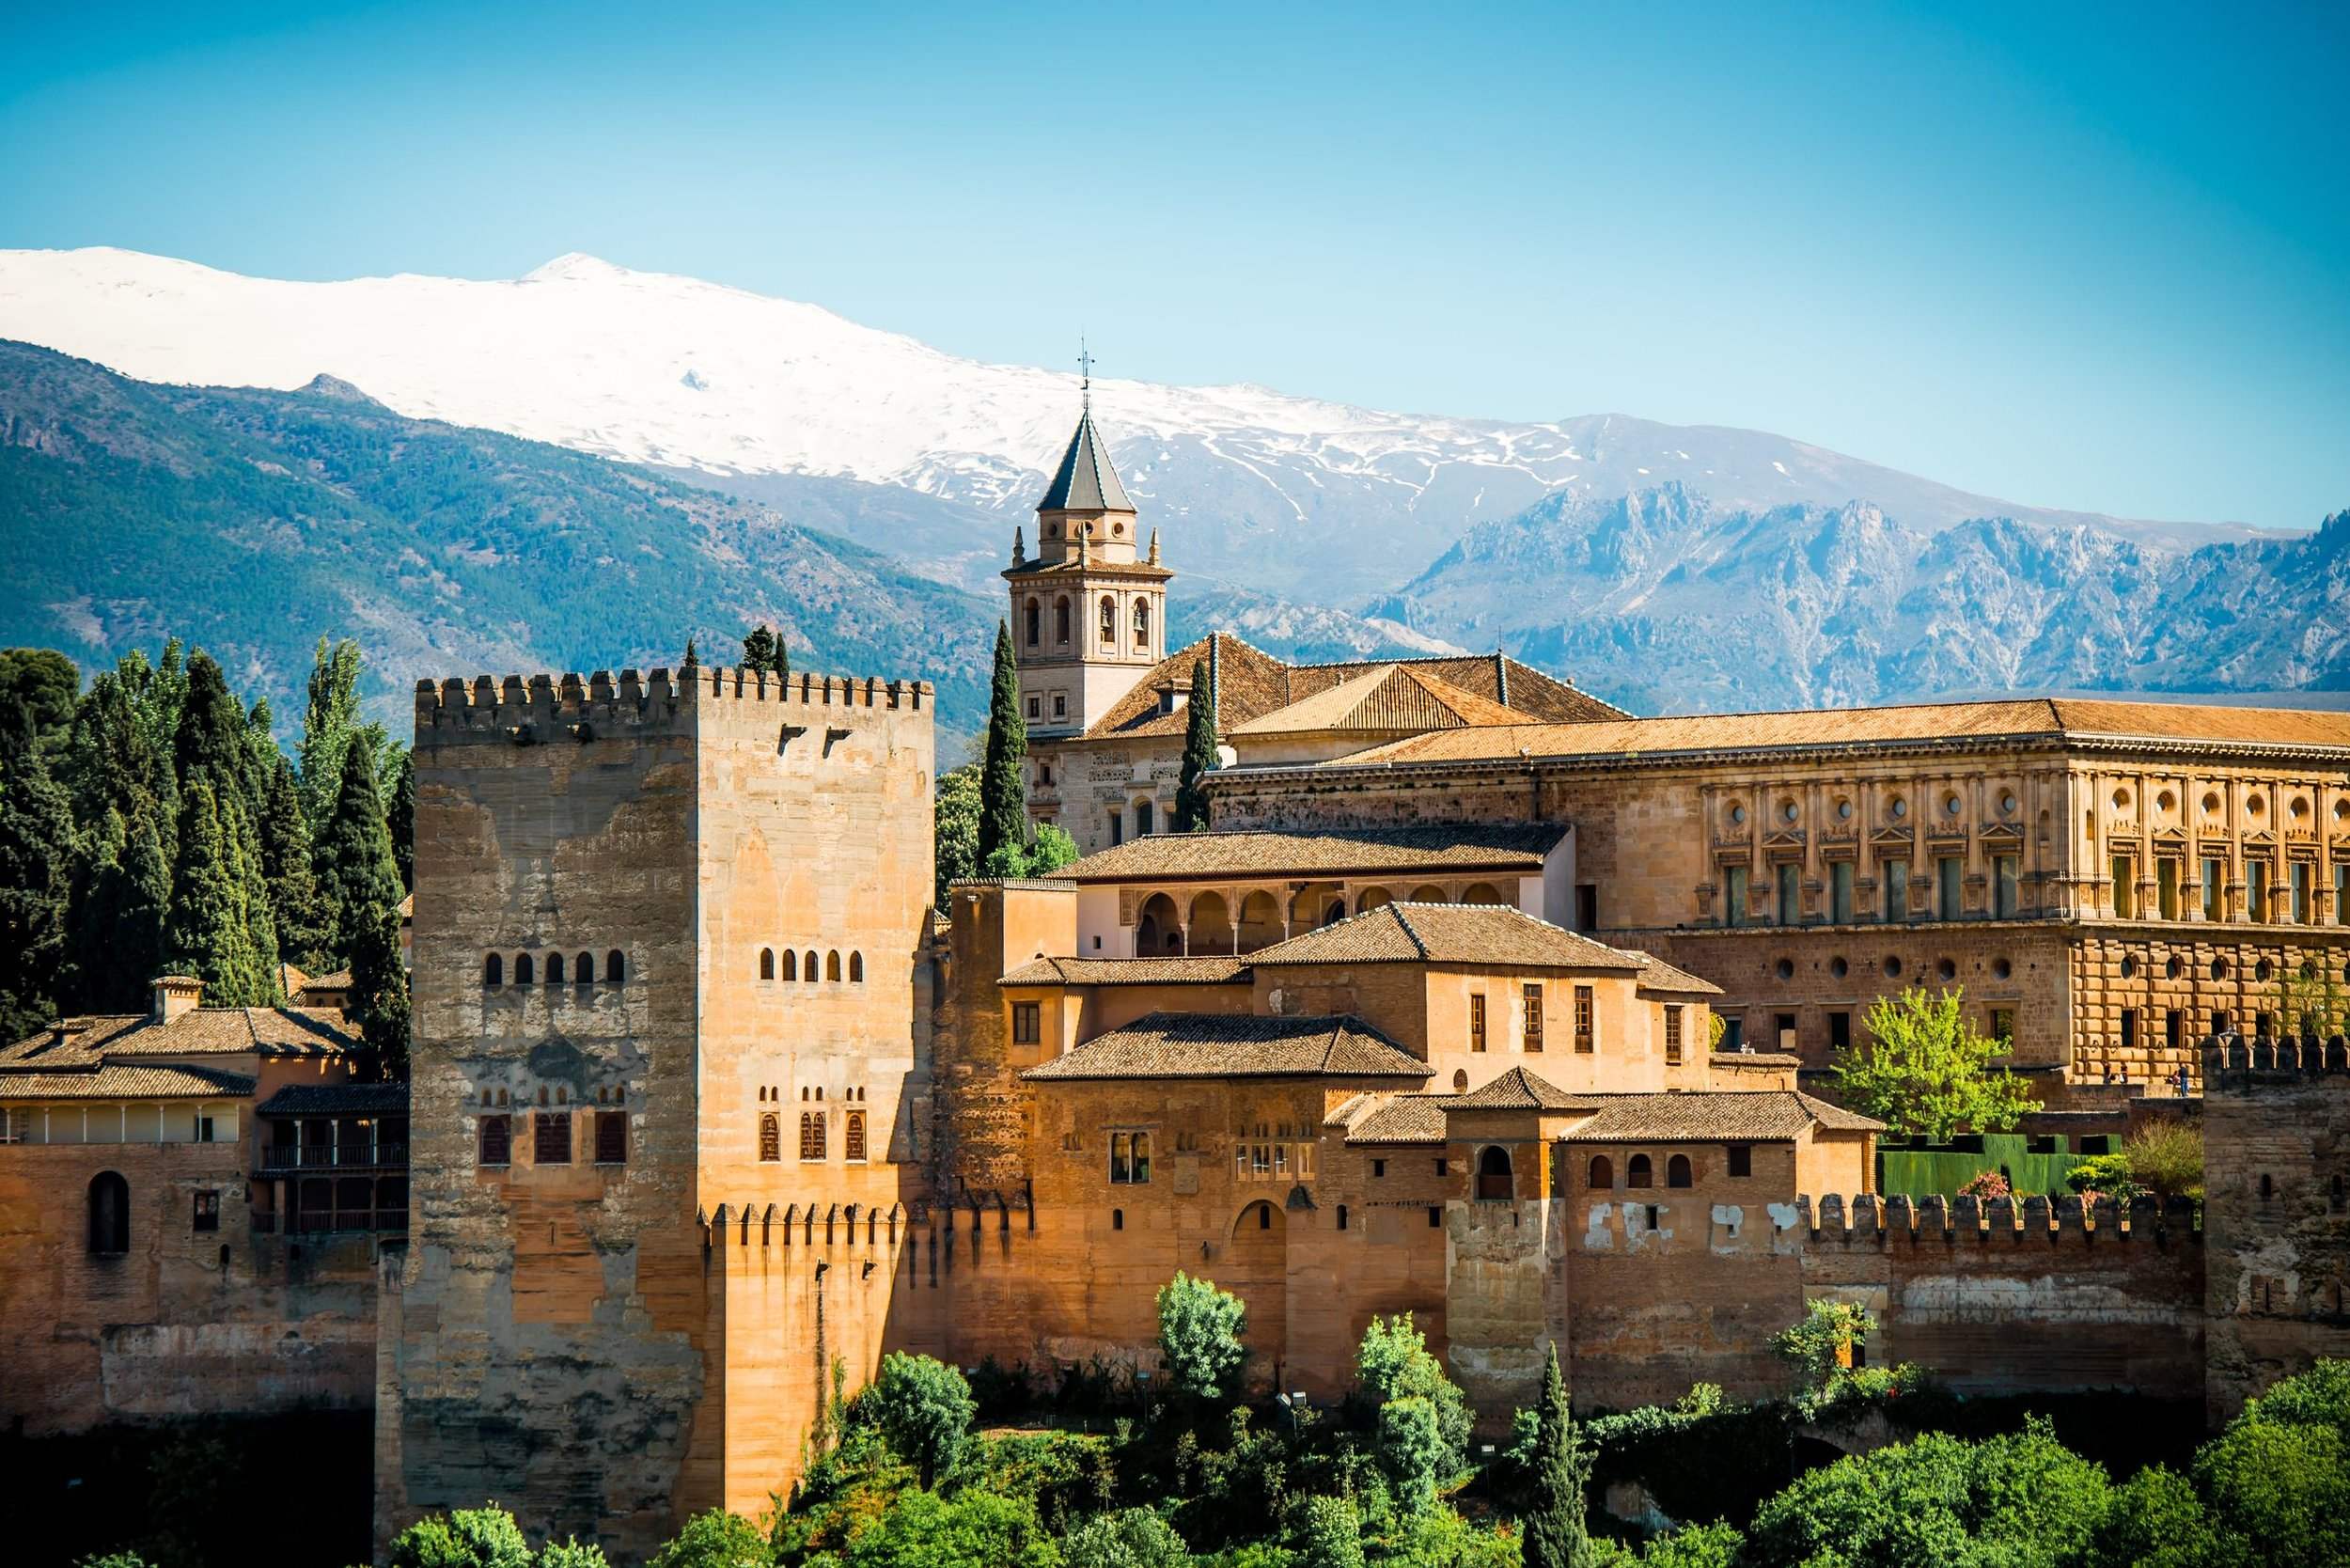 Sightseeing in andalucia - Southern Spain is beautiful. Extend your trip and see more of Andalucia. From Alhambra to Seville, a truly amazing holiday for you and your family.